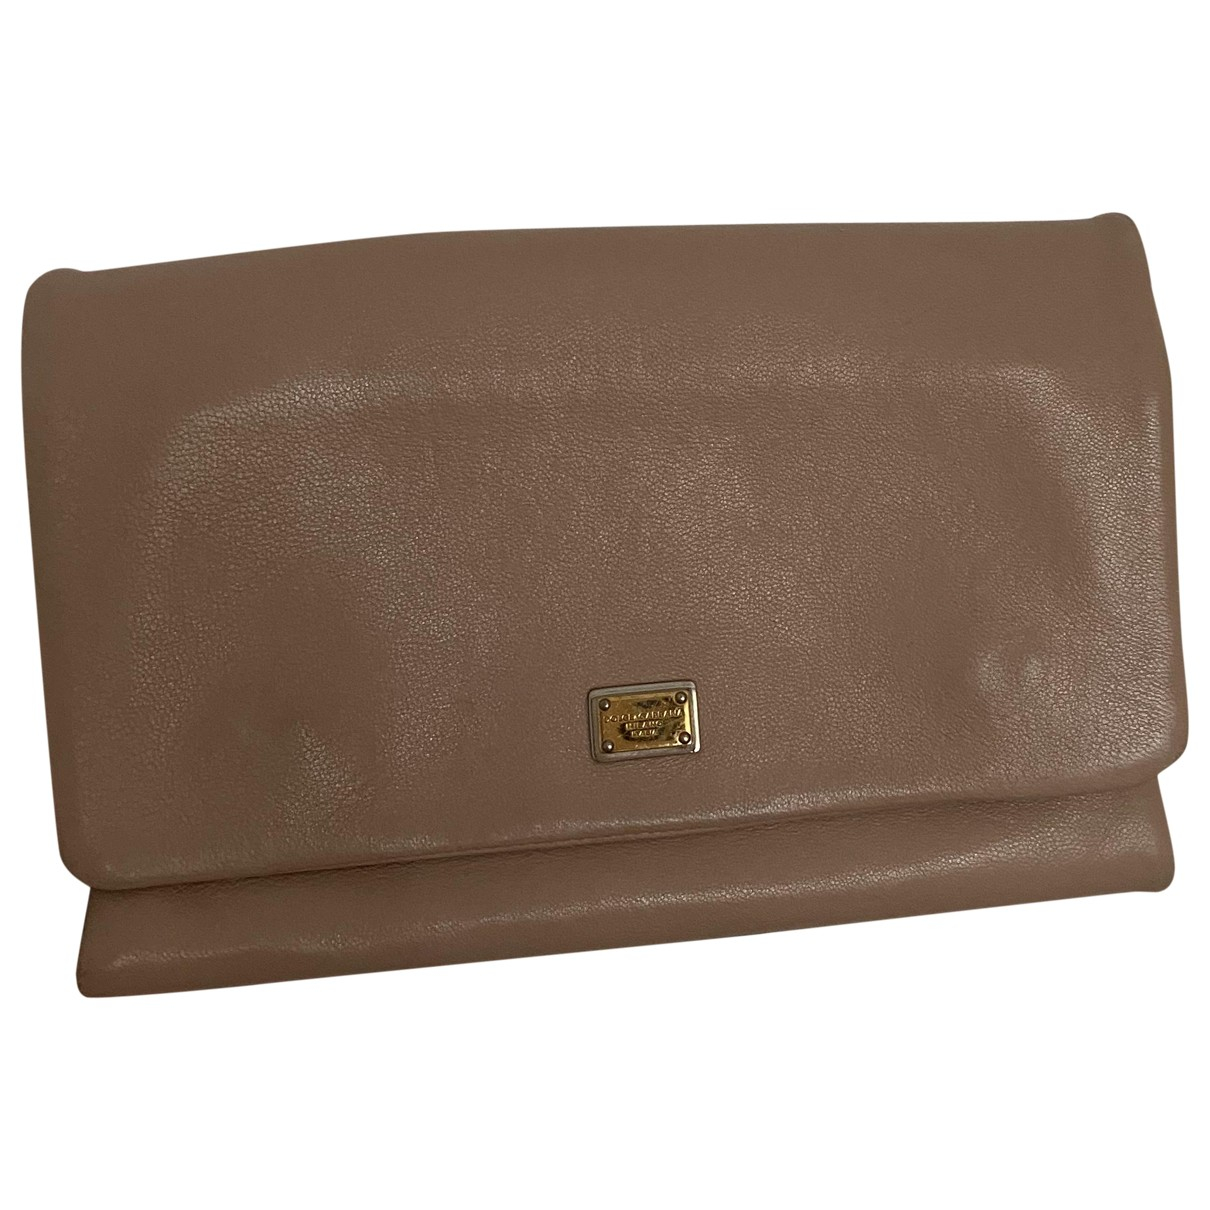 Dolce & Gabbana \N Beige Leather Clutch bag for Women \N